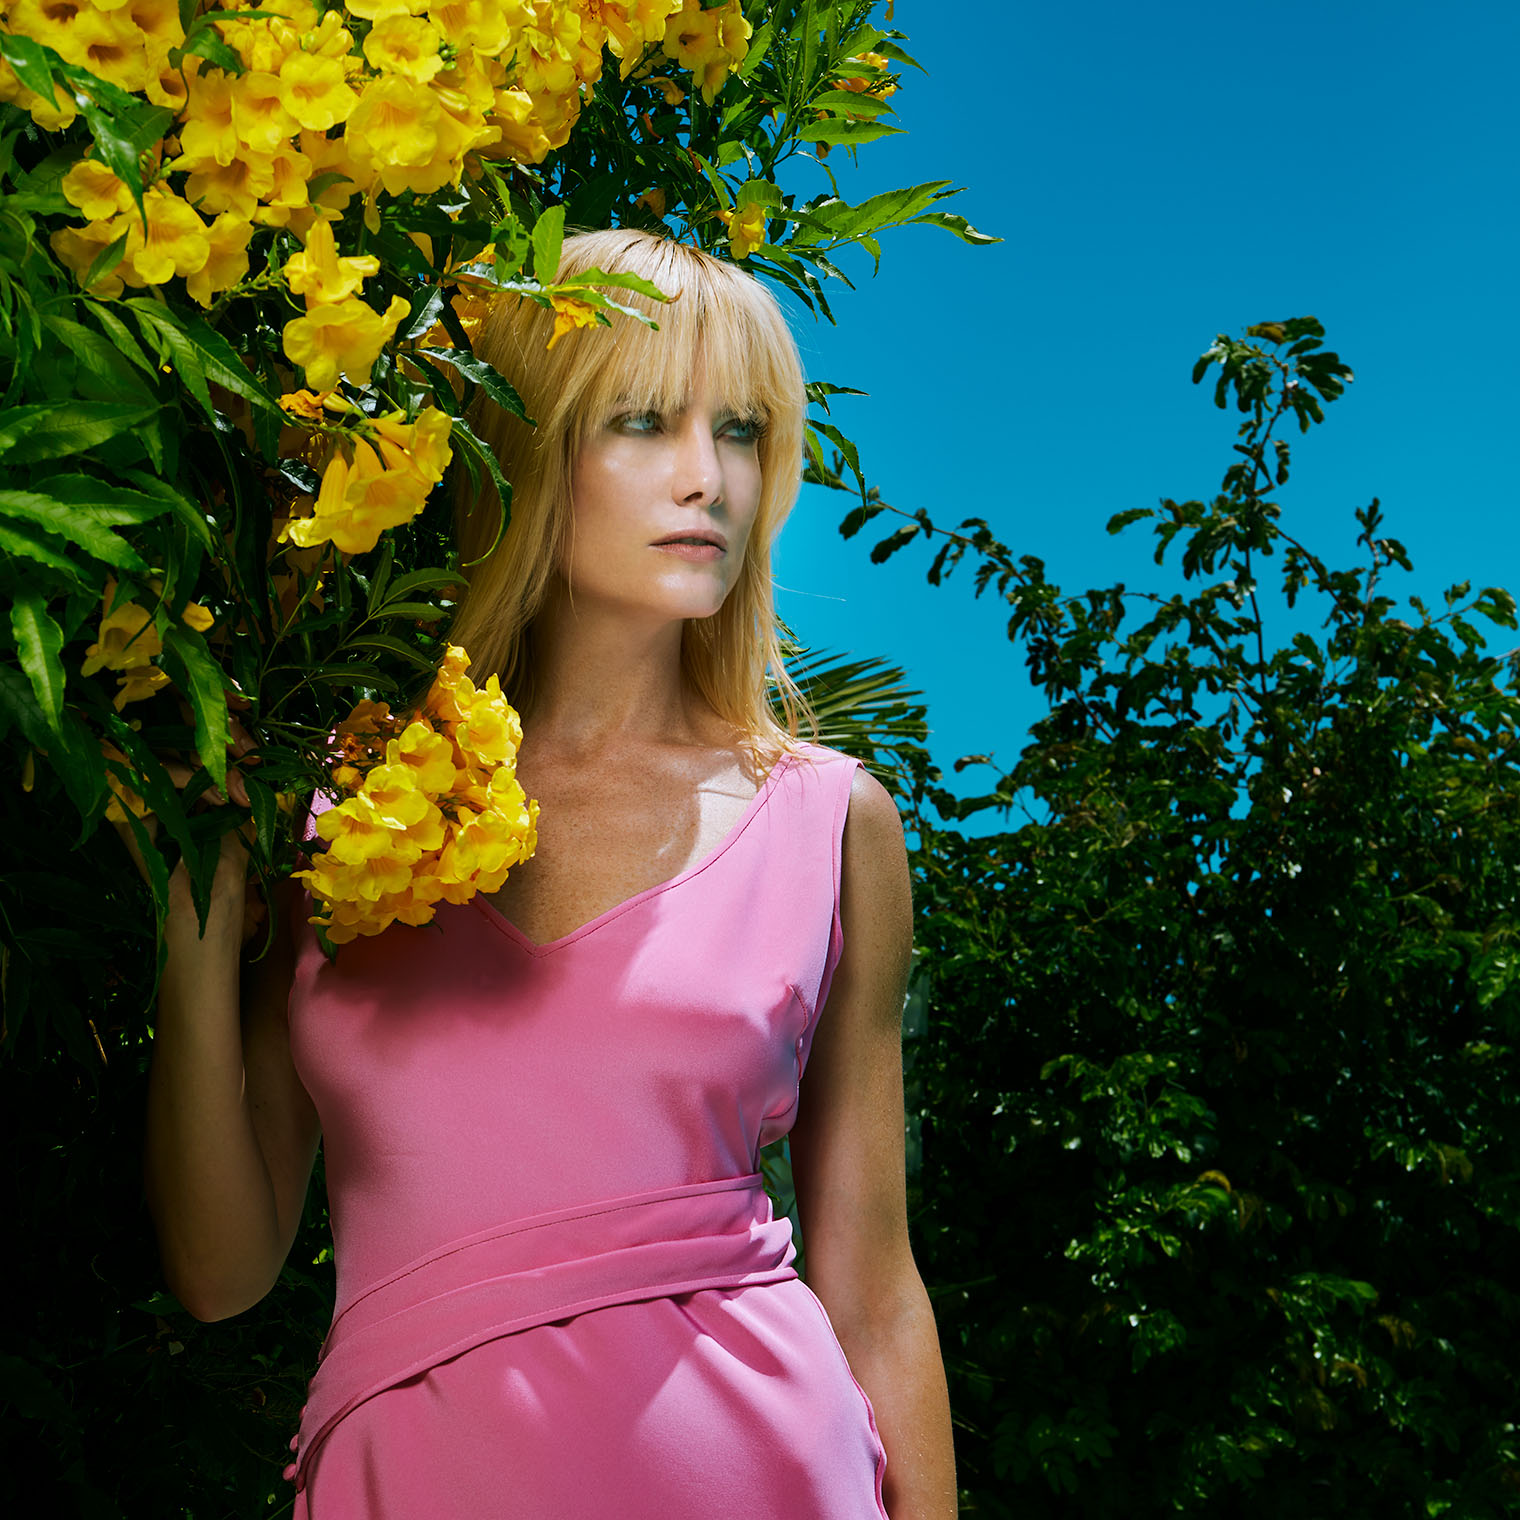 The Lady in Flowers - Fashion and Celebrity Photography Los Angeles